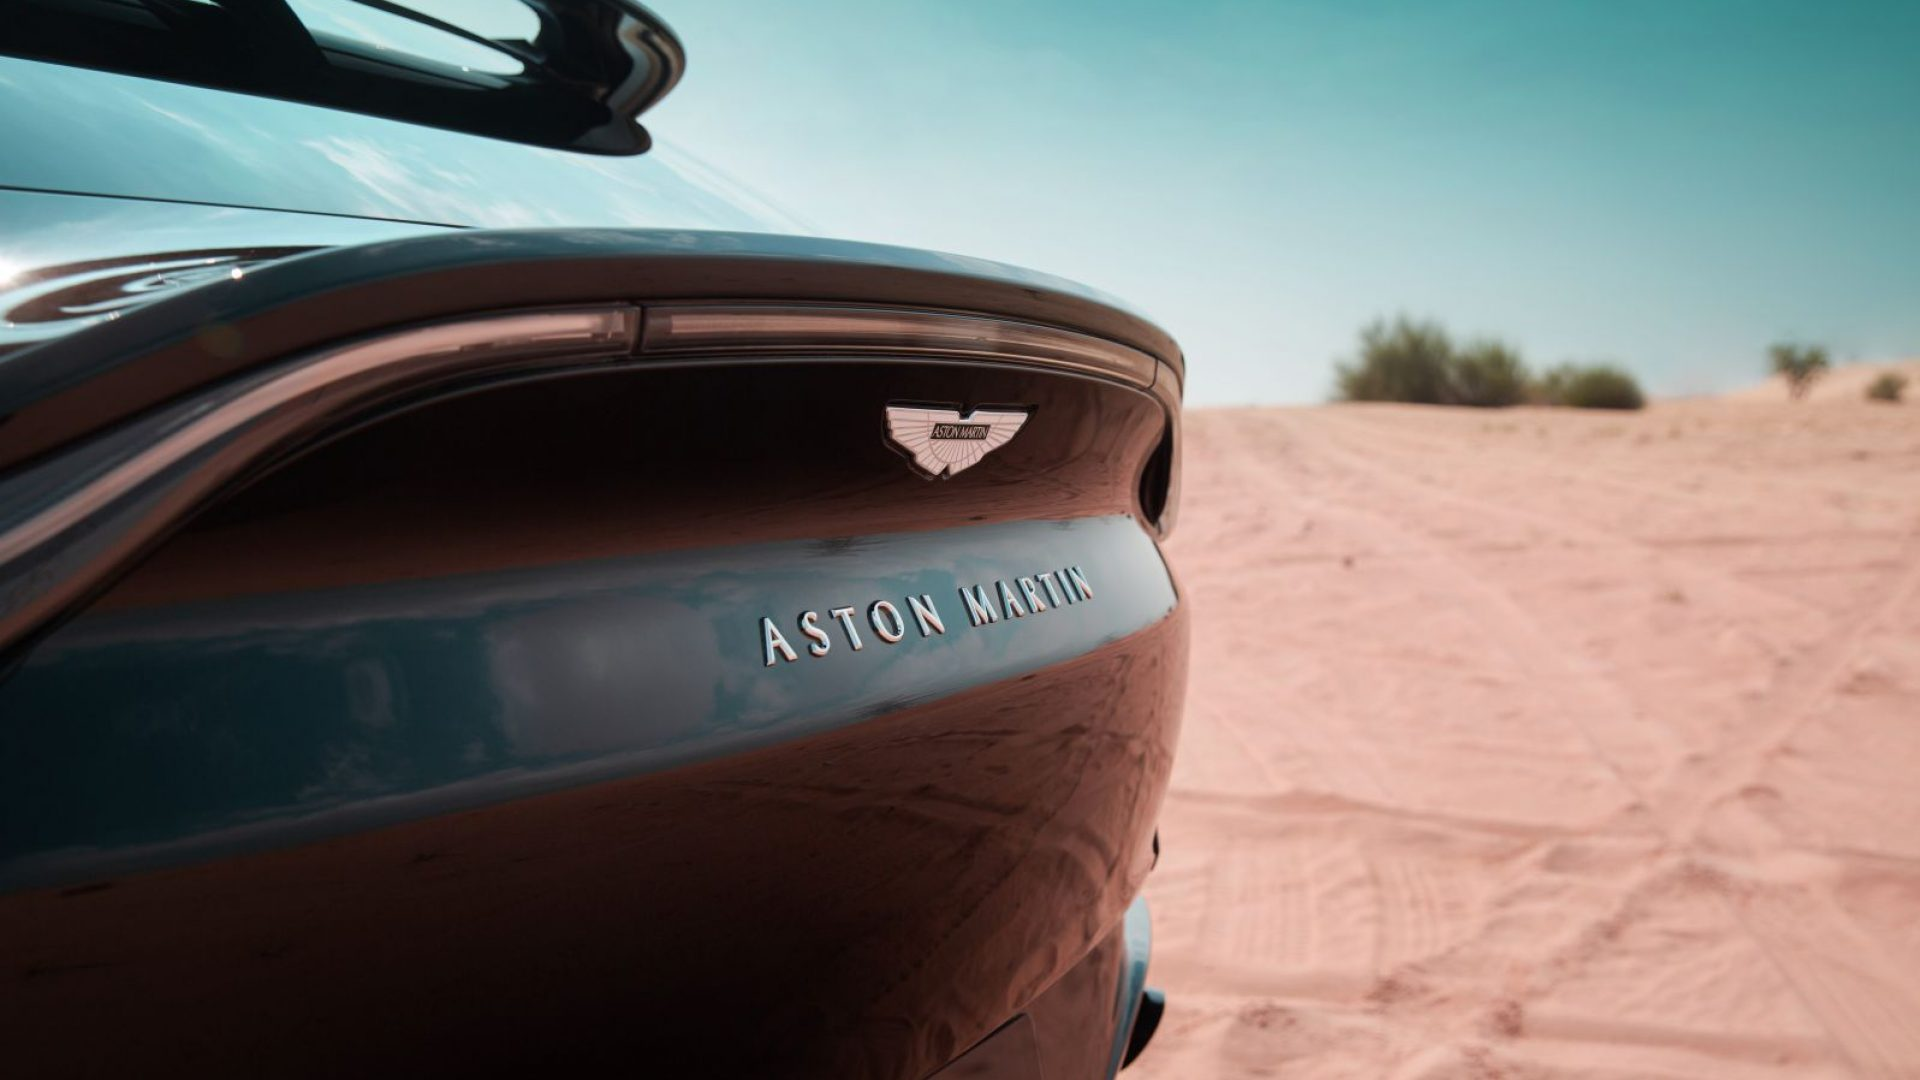 aston-martin-dbx-in-the-middle-east-21-jpg.